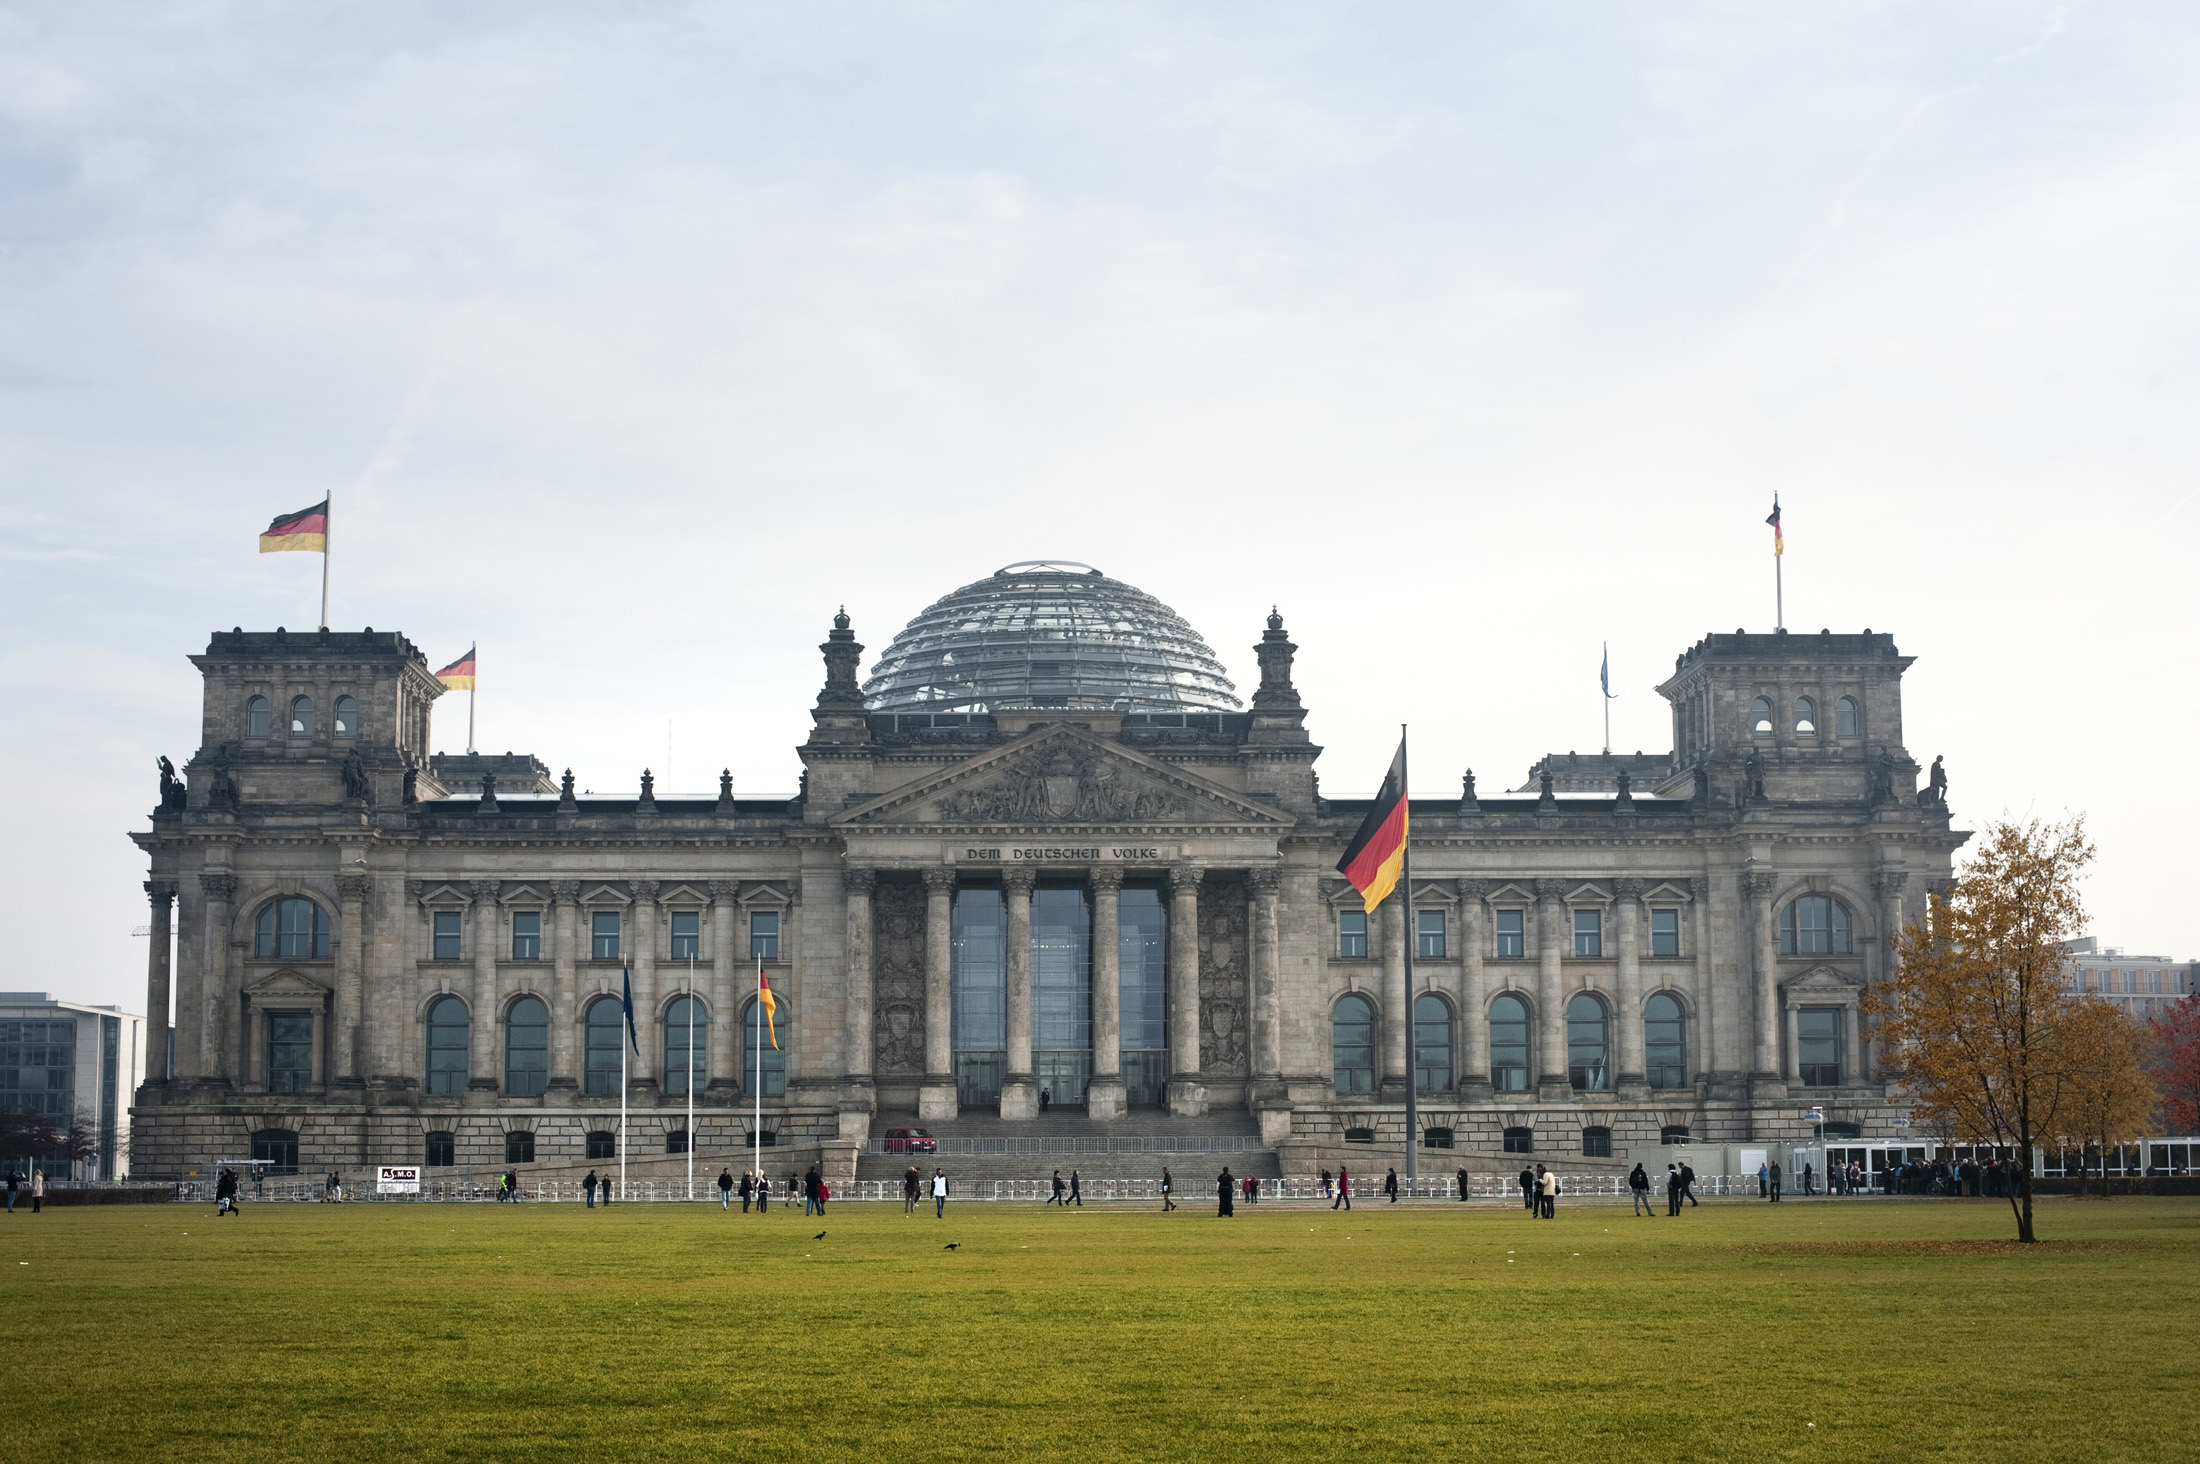 historic facede of the berlin reichstag building, germany